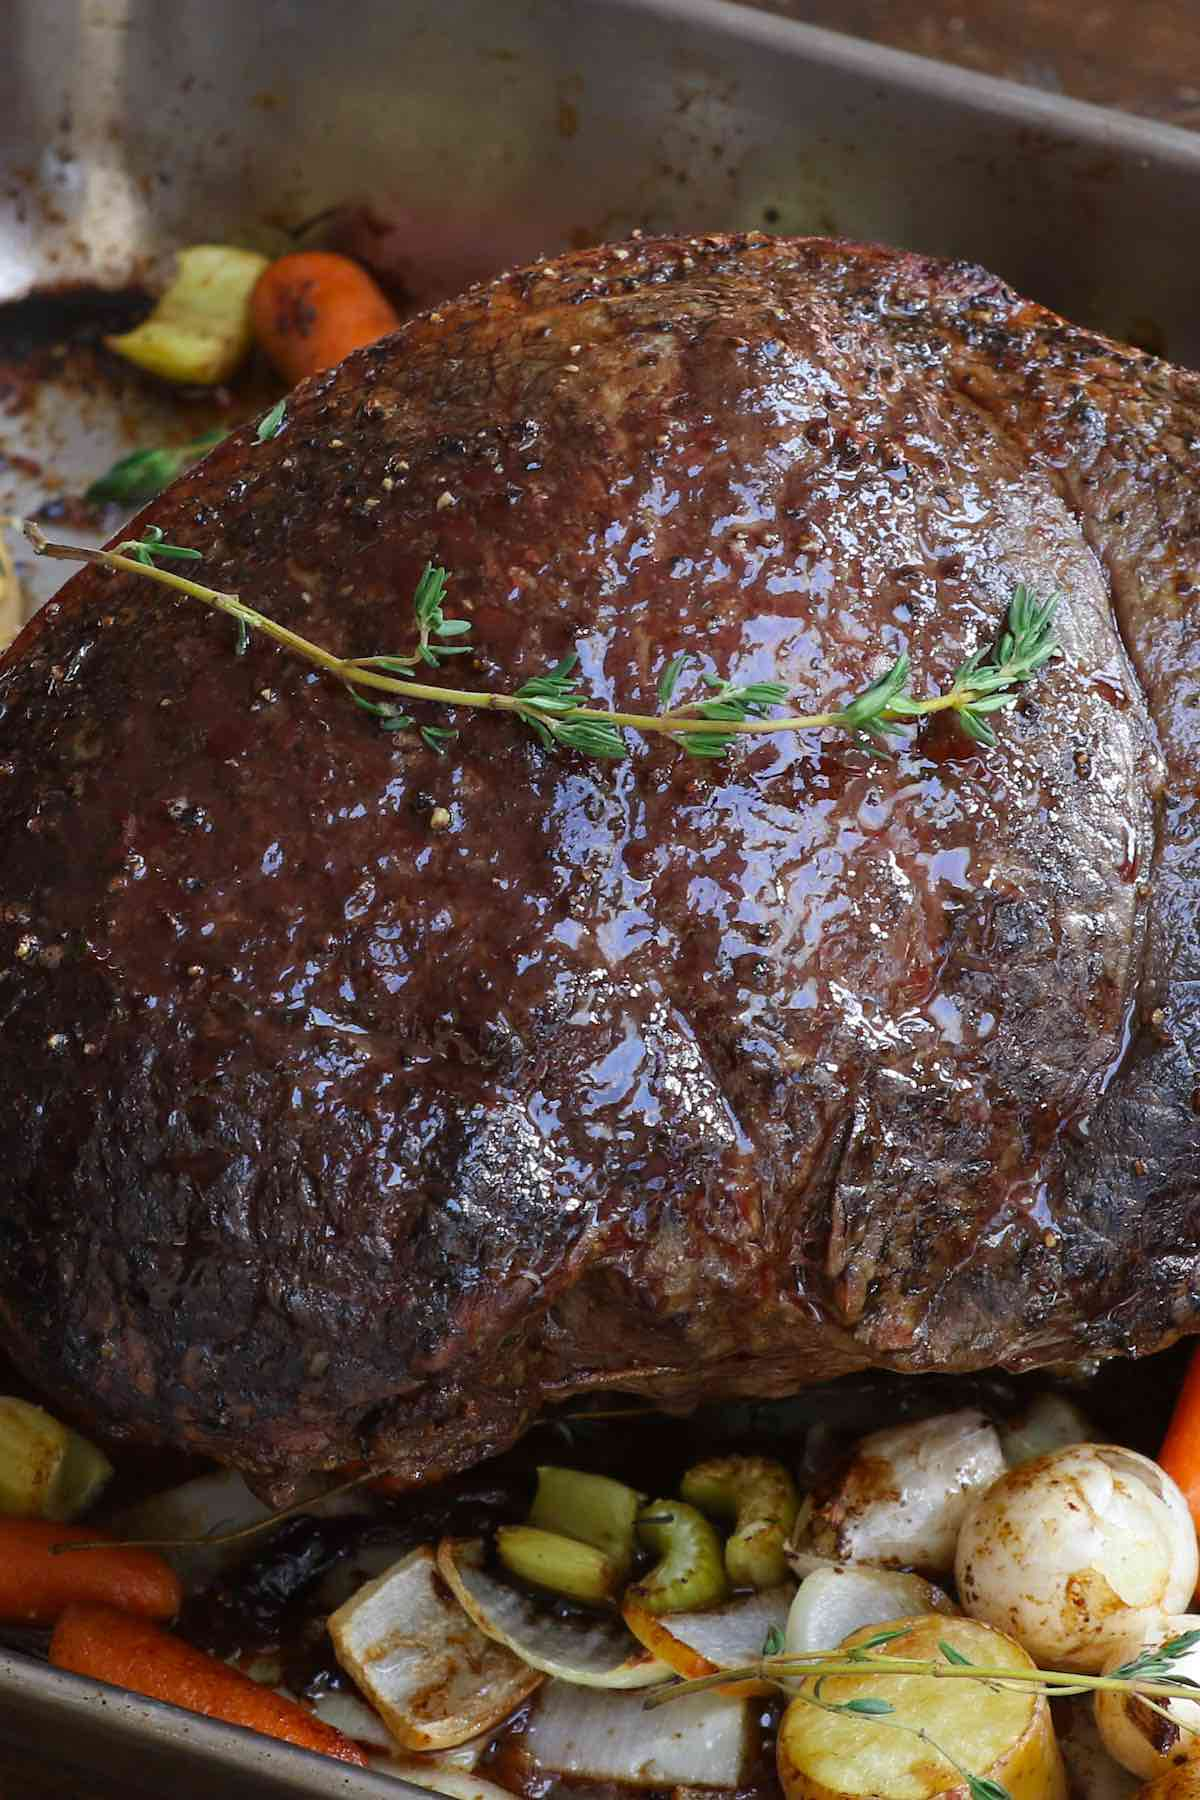 Sirloin roast in a roasting pan with vegetables